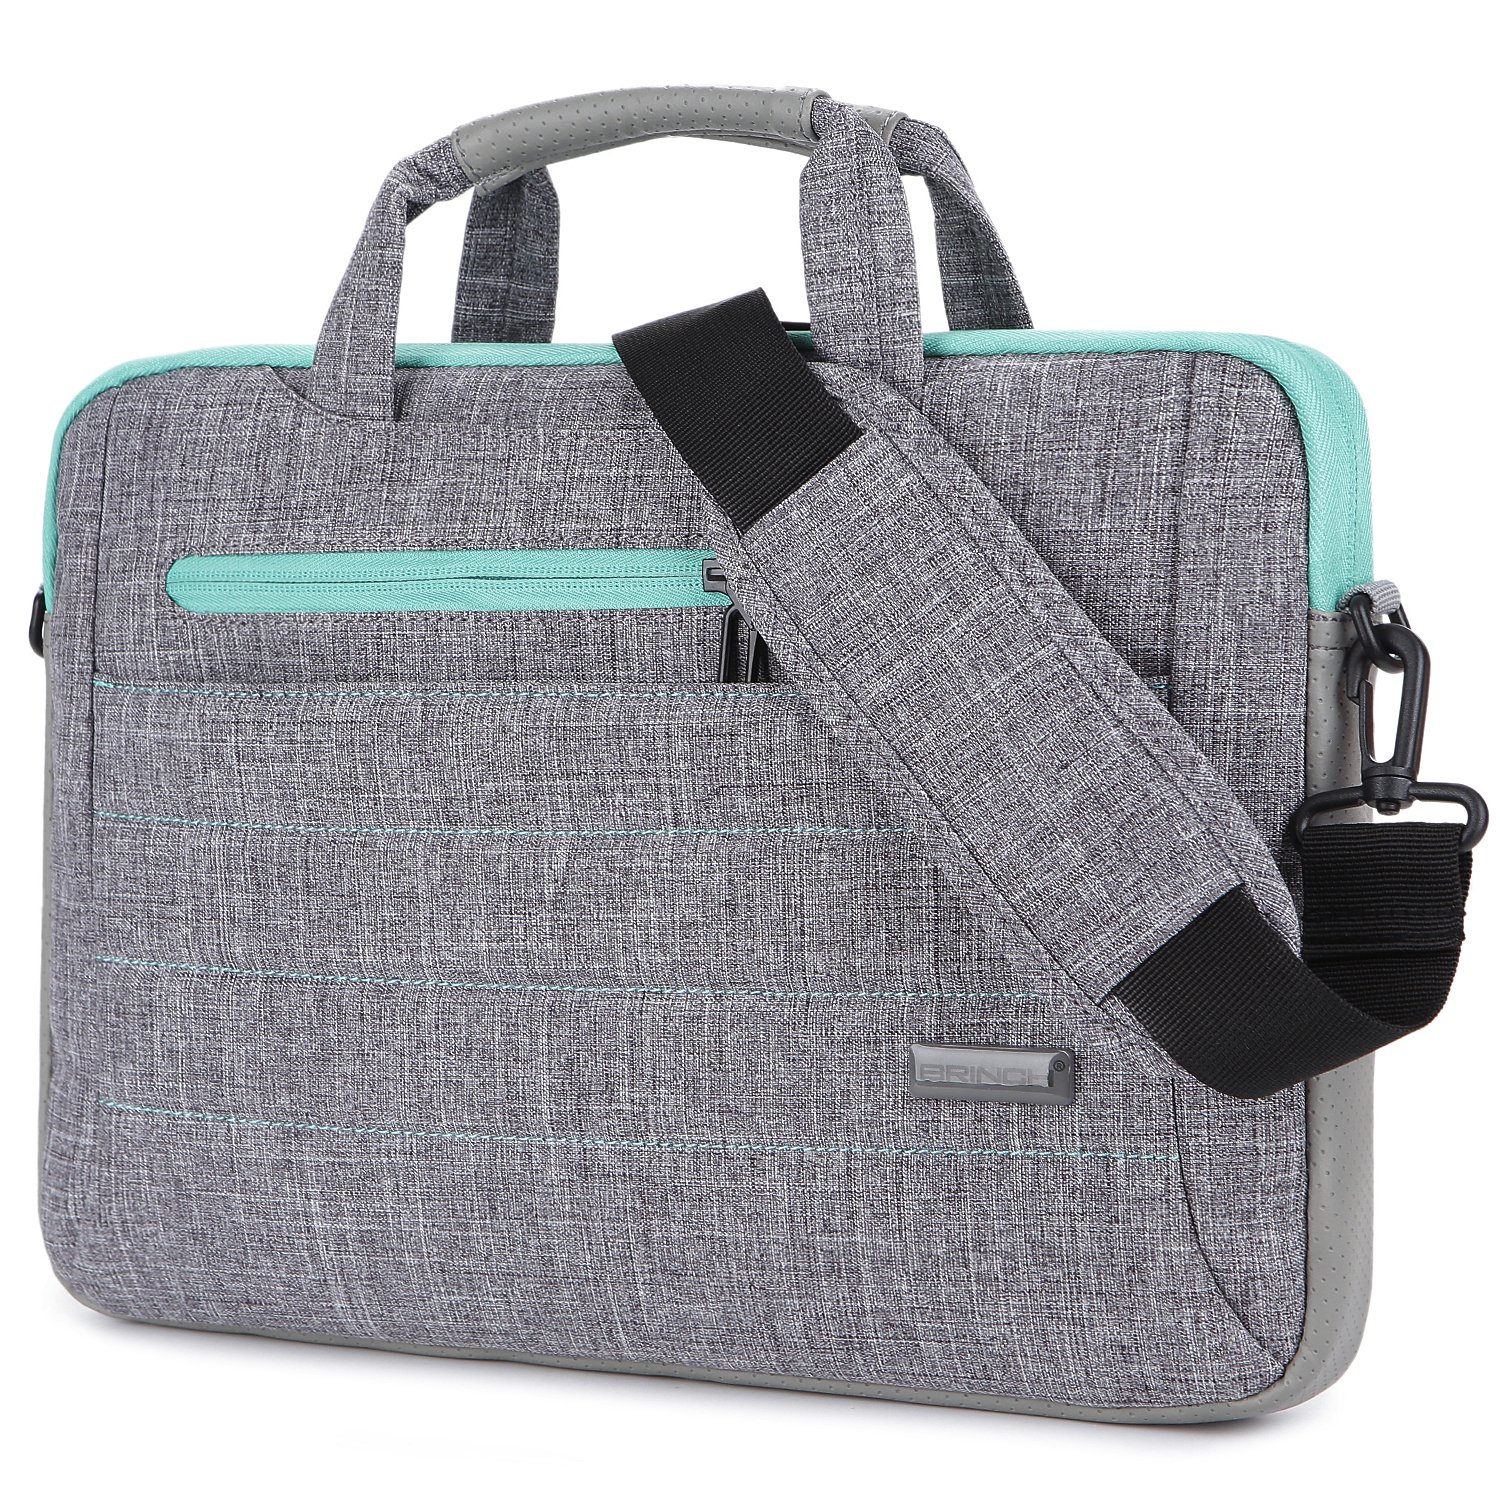 BRINCH 15-15.6 Inch Multi-functional Suit Fabric Portable Laptop Sleeve Case Shoulder Messenger Bag Briefcase for Laptop, Tablet, Macbook, Notebook - Grey-Green